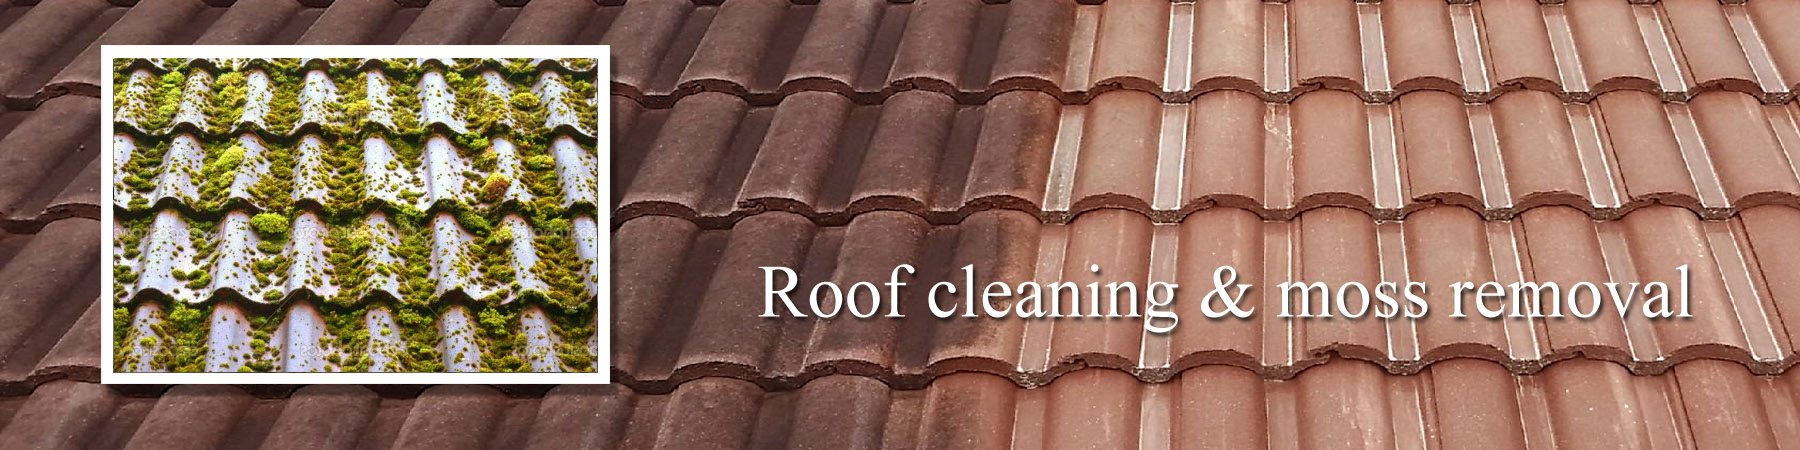 Roof cleaning Colchester J R Cleaning